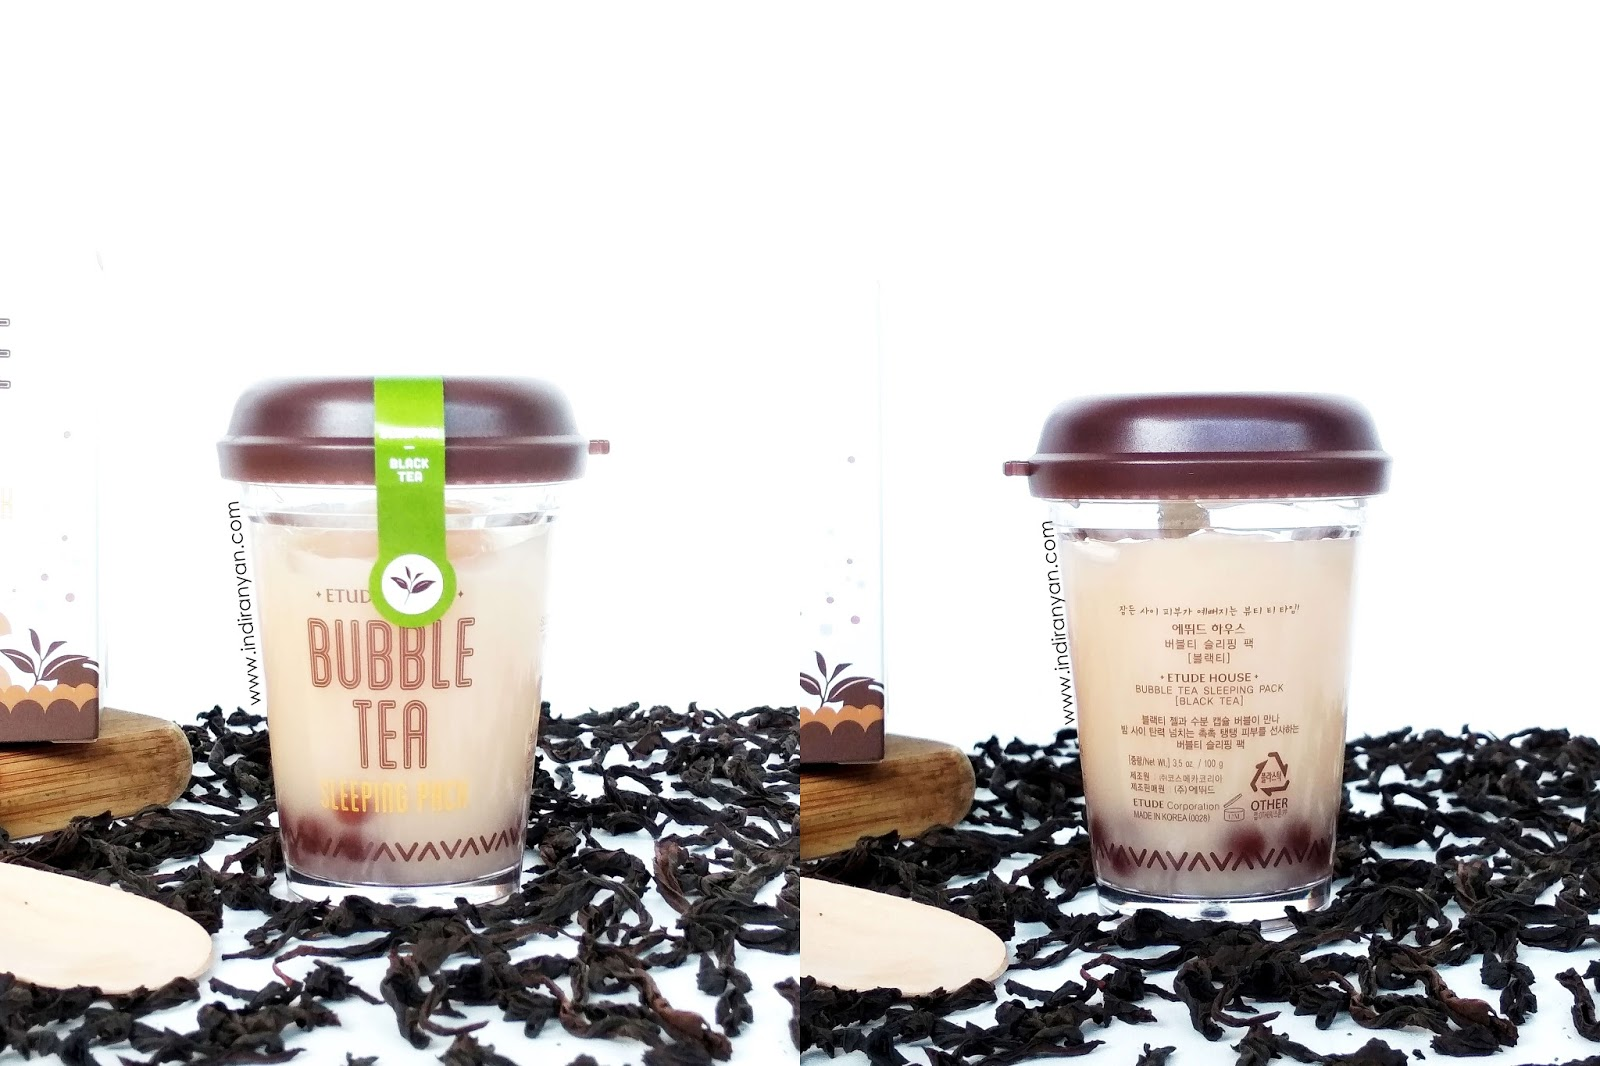 etude-house-bubble-tea-sleeping-pack-black-tea, etude-house-bubble-tea-black-tea